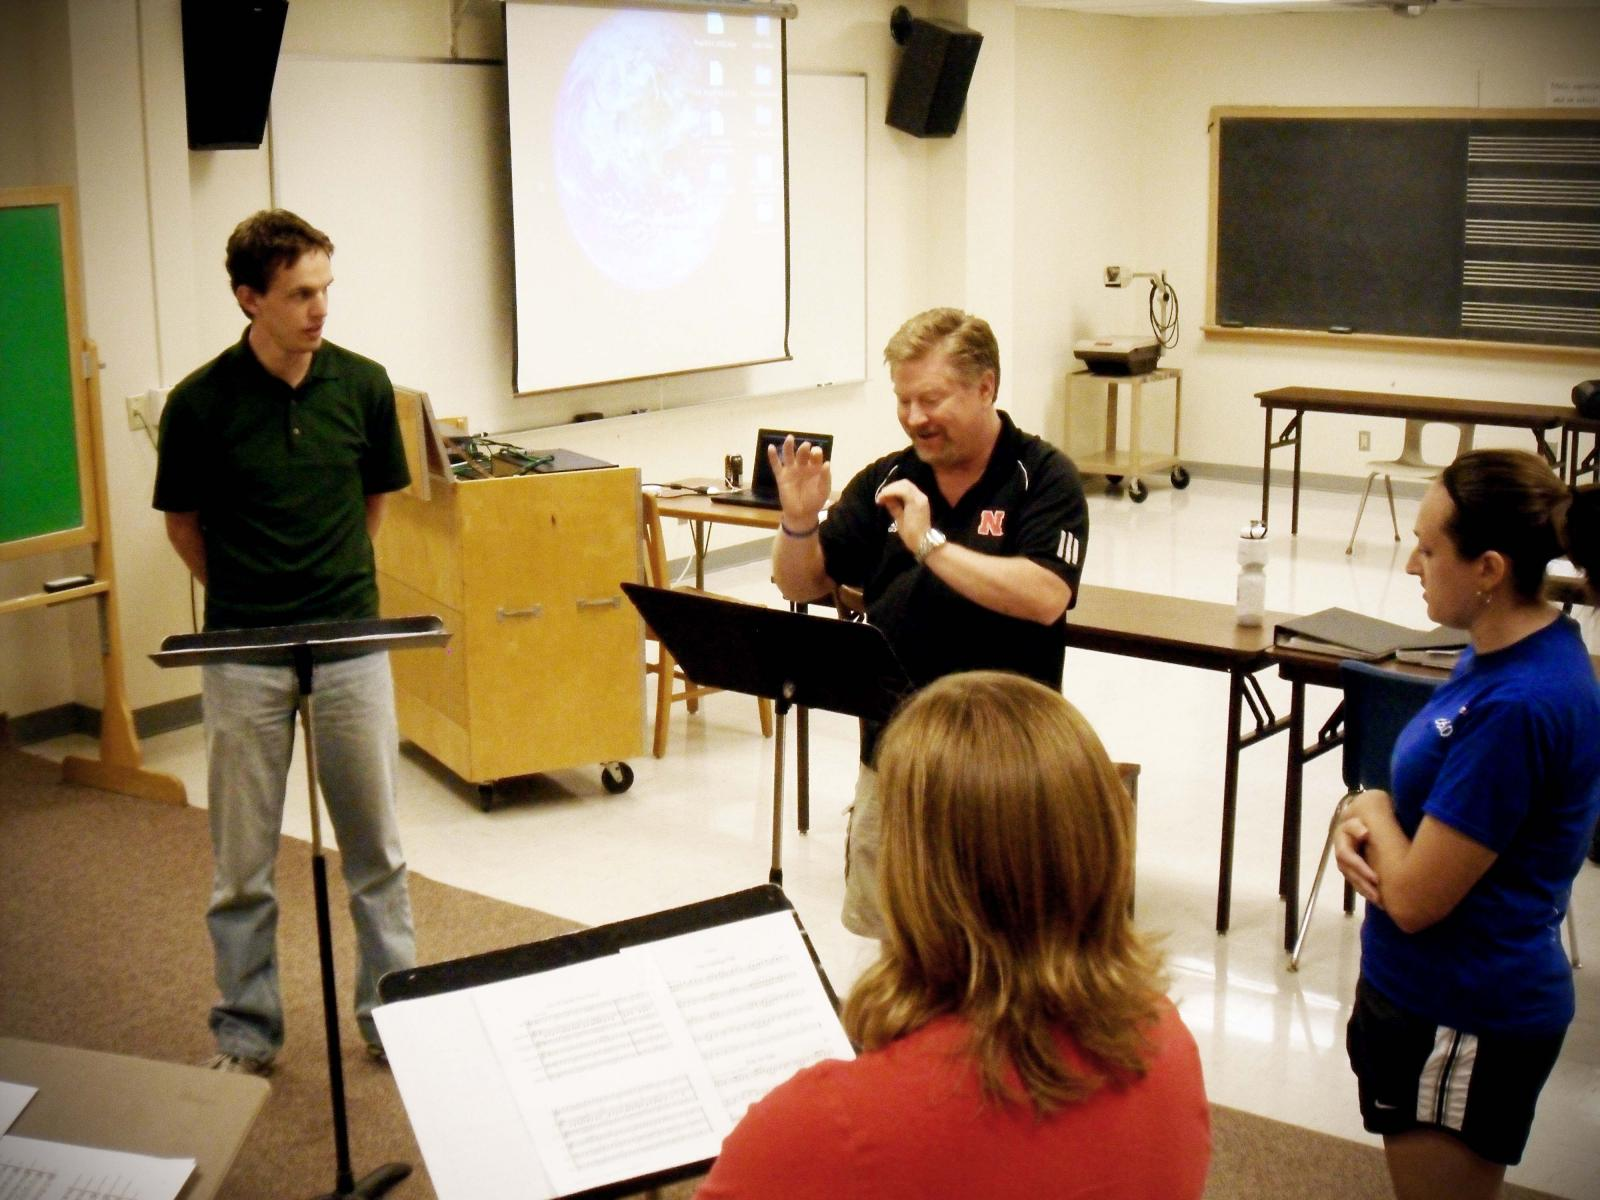 Professor Doug Bush leads a class in conducting.